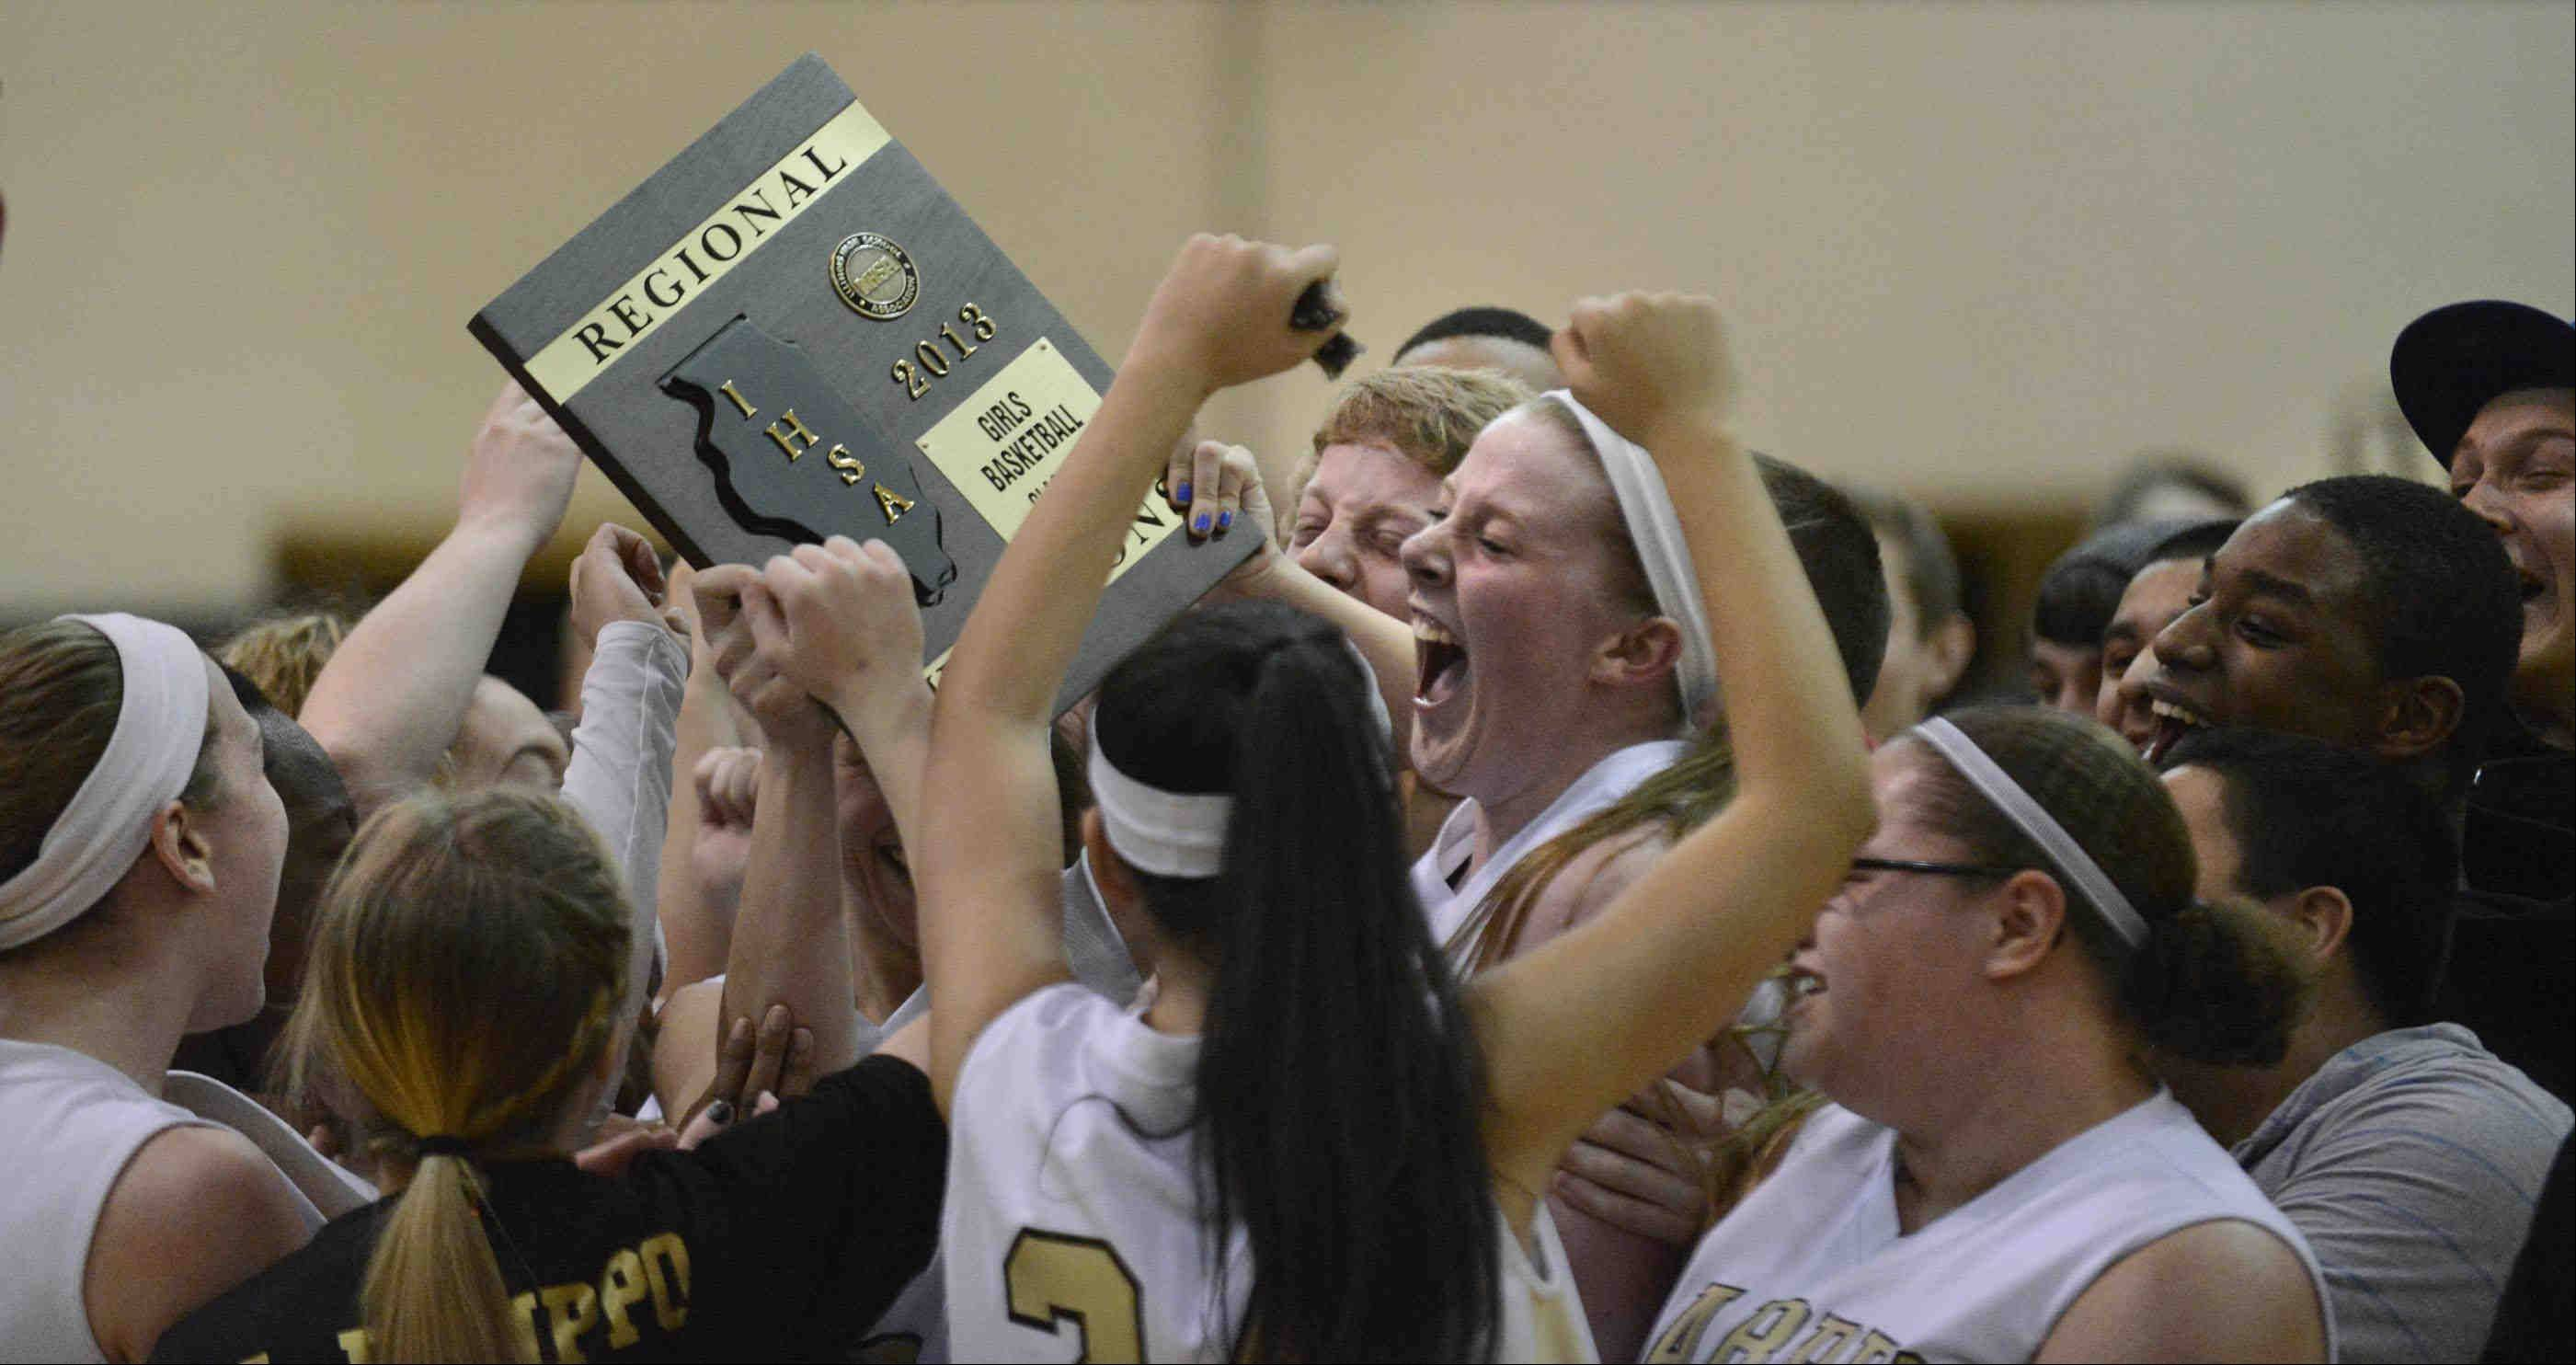 Streamwood celebrates their win over South Elgin in the Class 4A regional championship game Thursday in Streamwood.